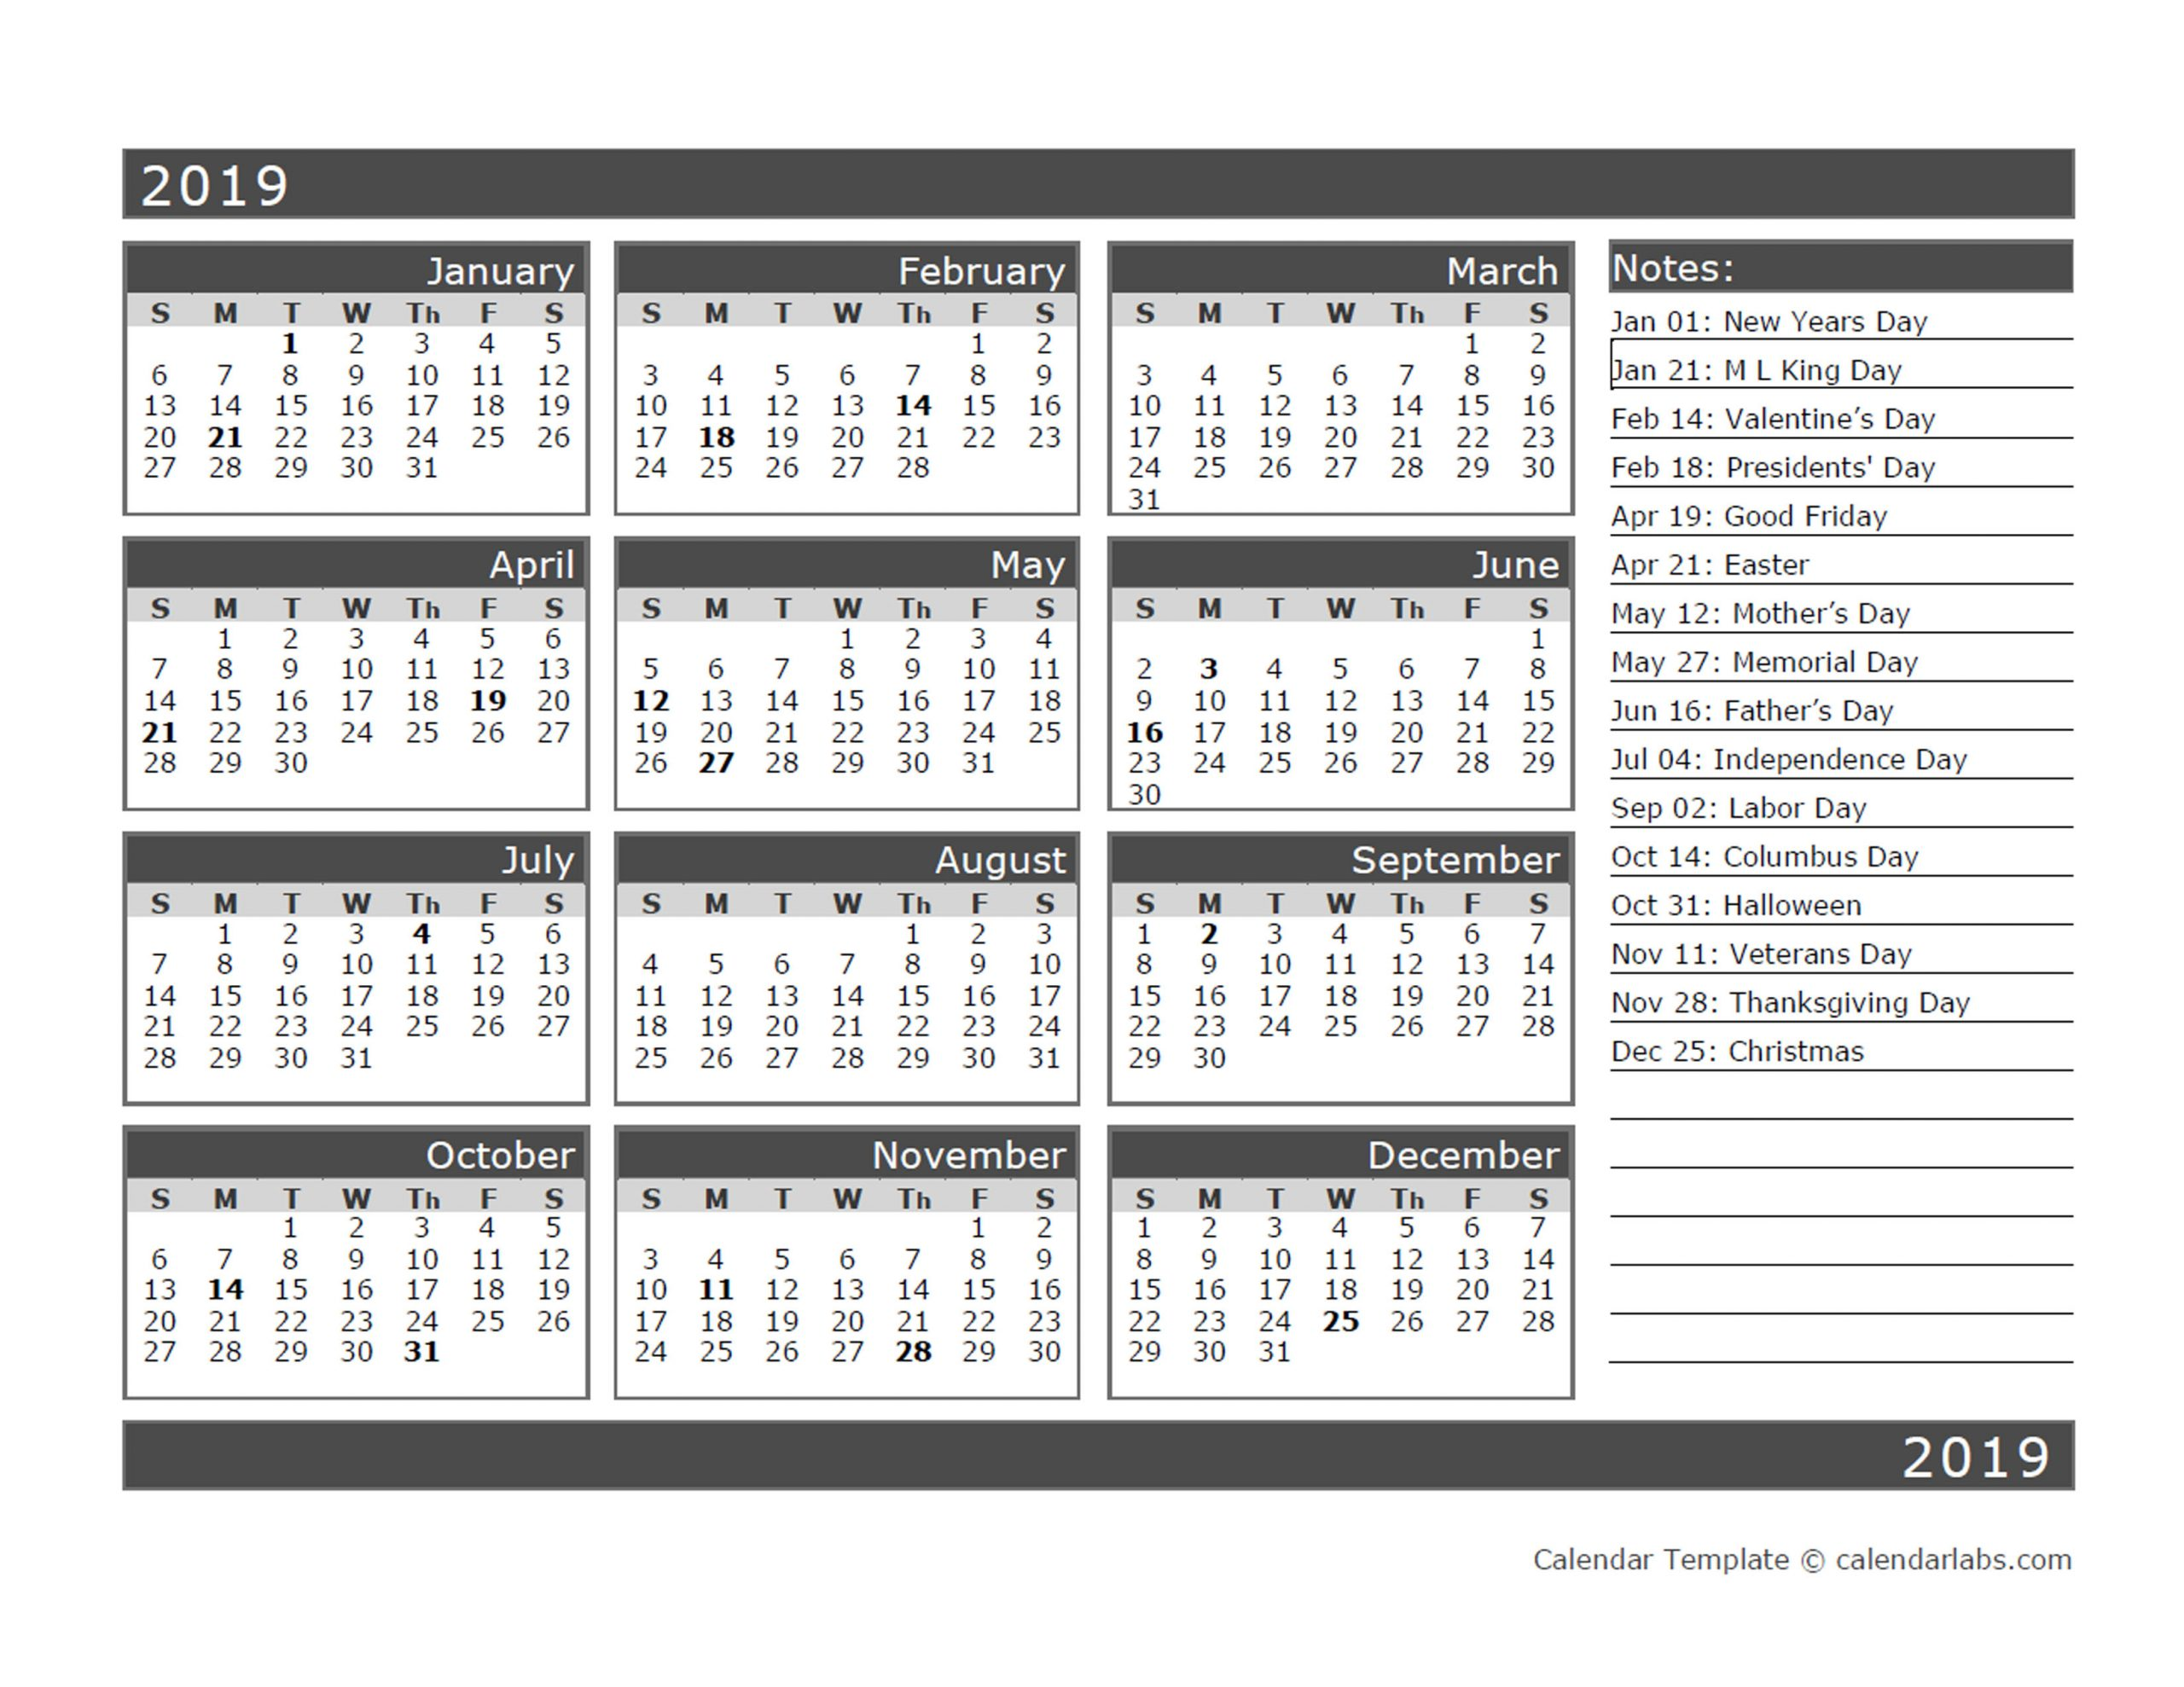 12-Month One Page Calendar Template For 2019 - Free pertaining to Printable Twelve Month One Page Calendar